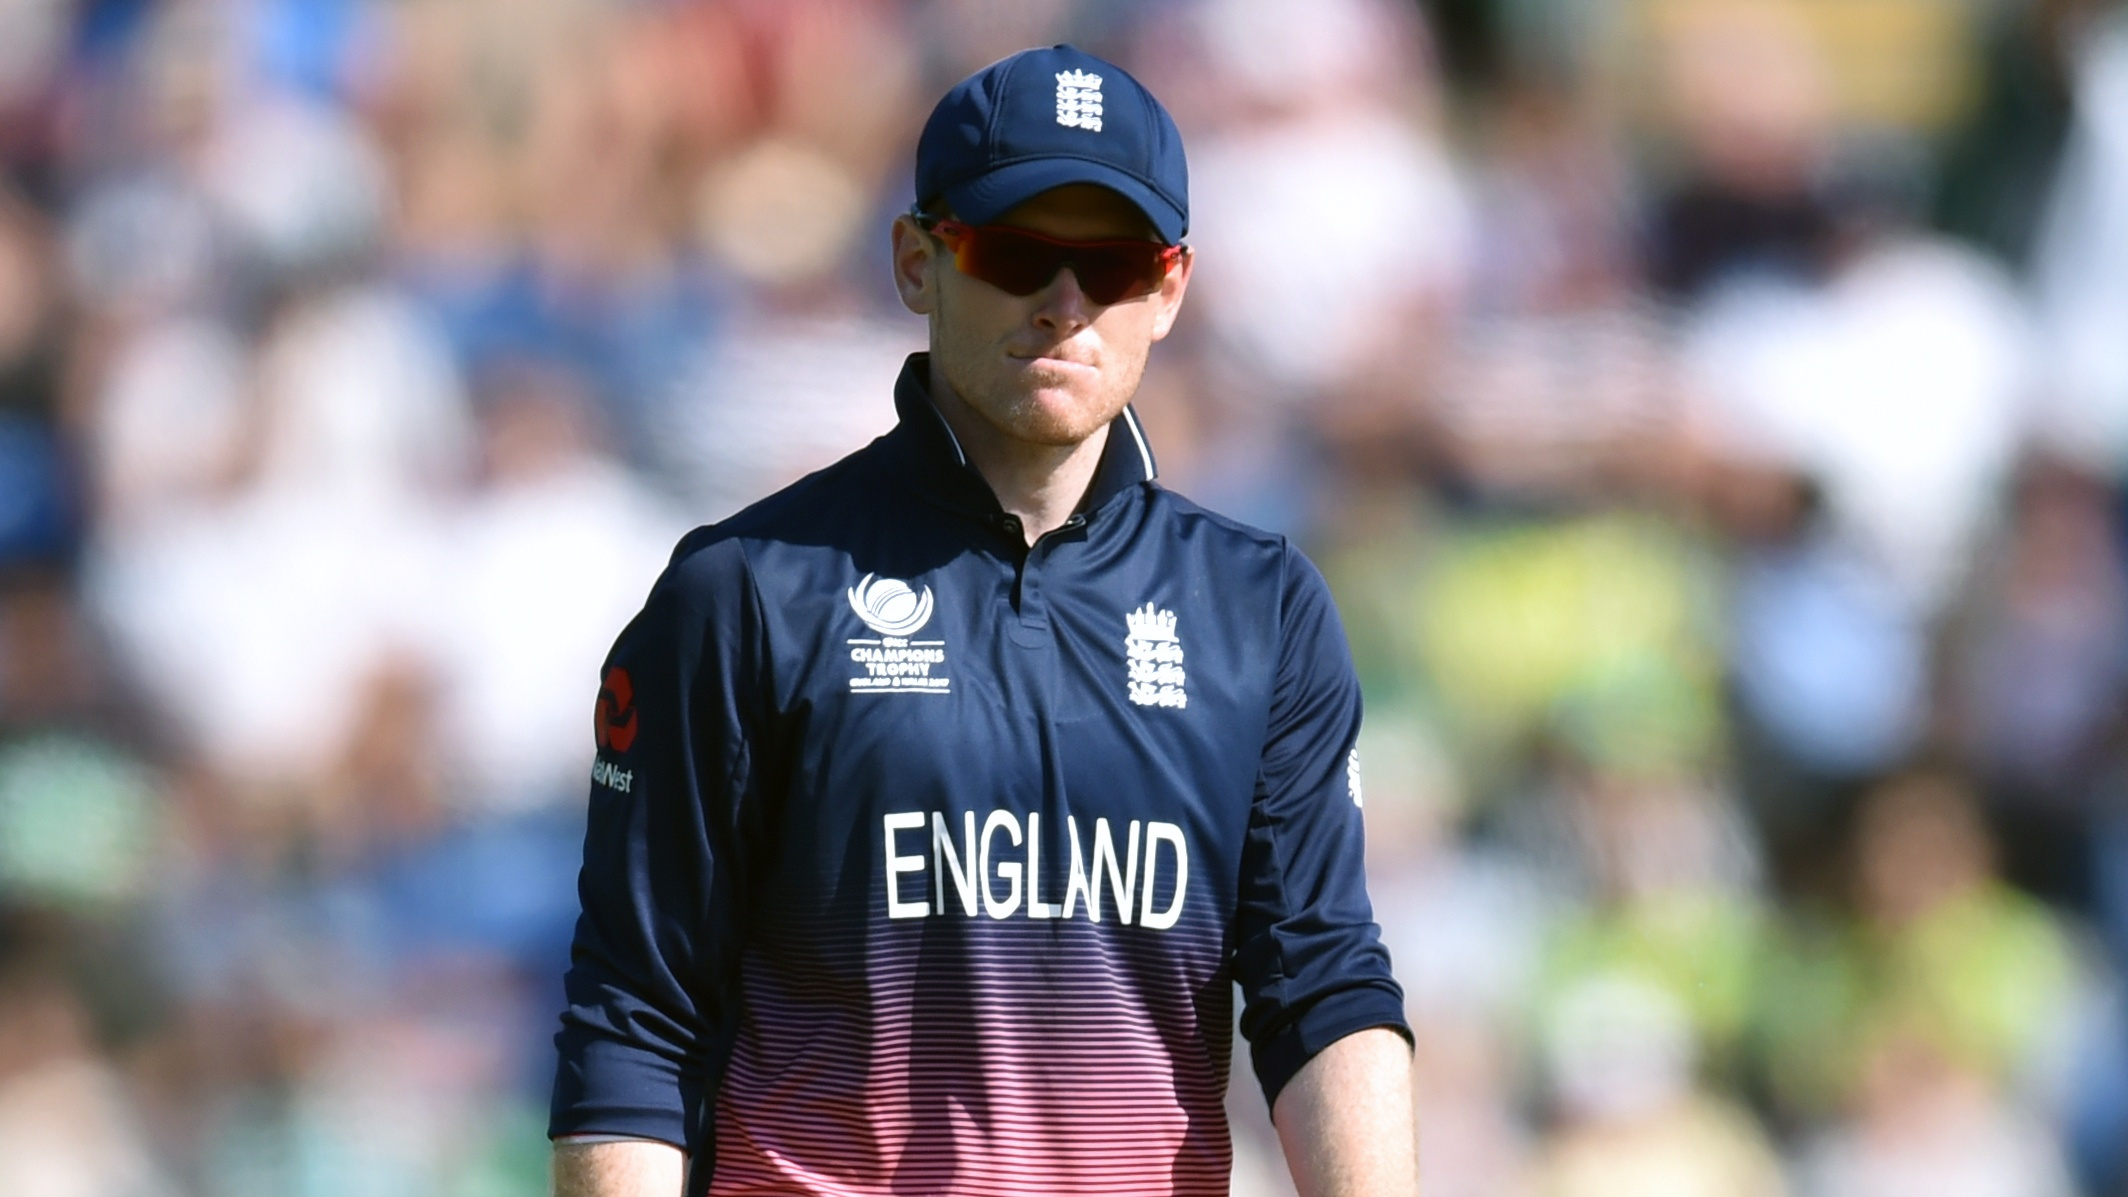 Cardiff pitch gave 'home advantage' to Pakistan: Eoin Morgan